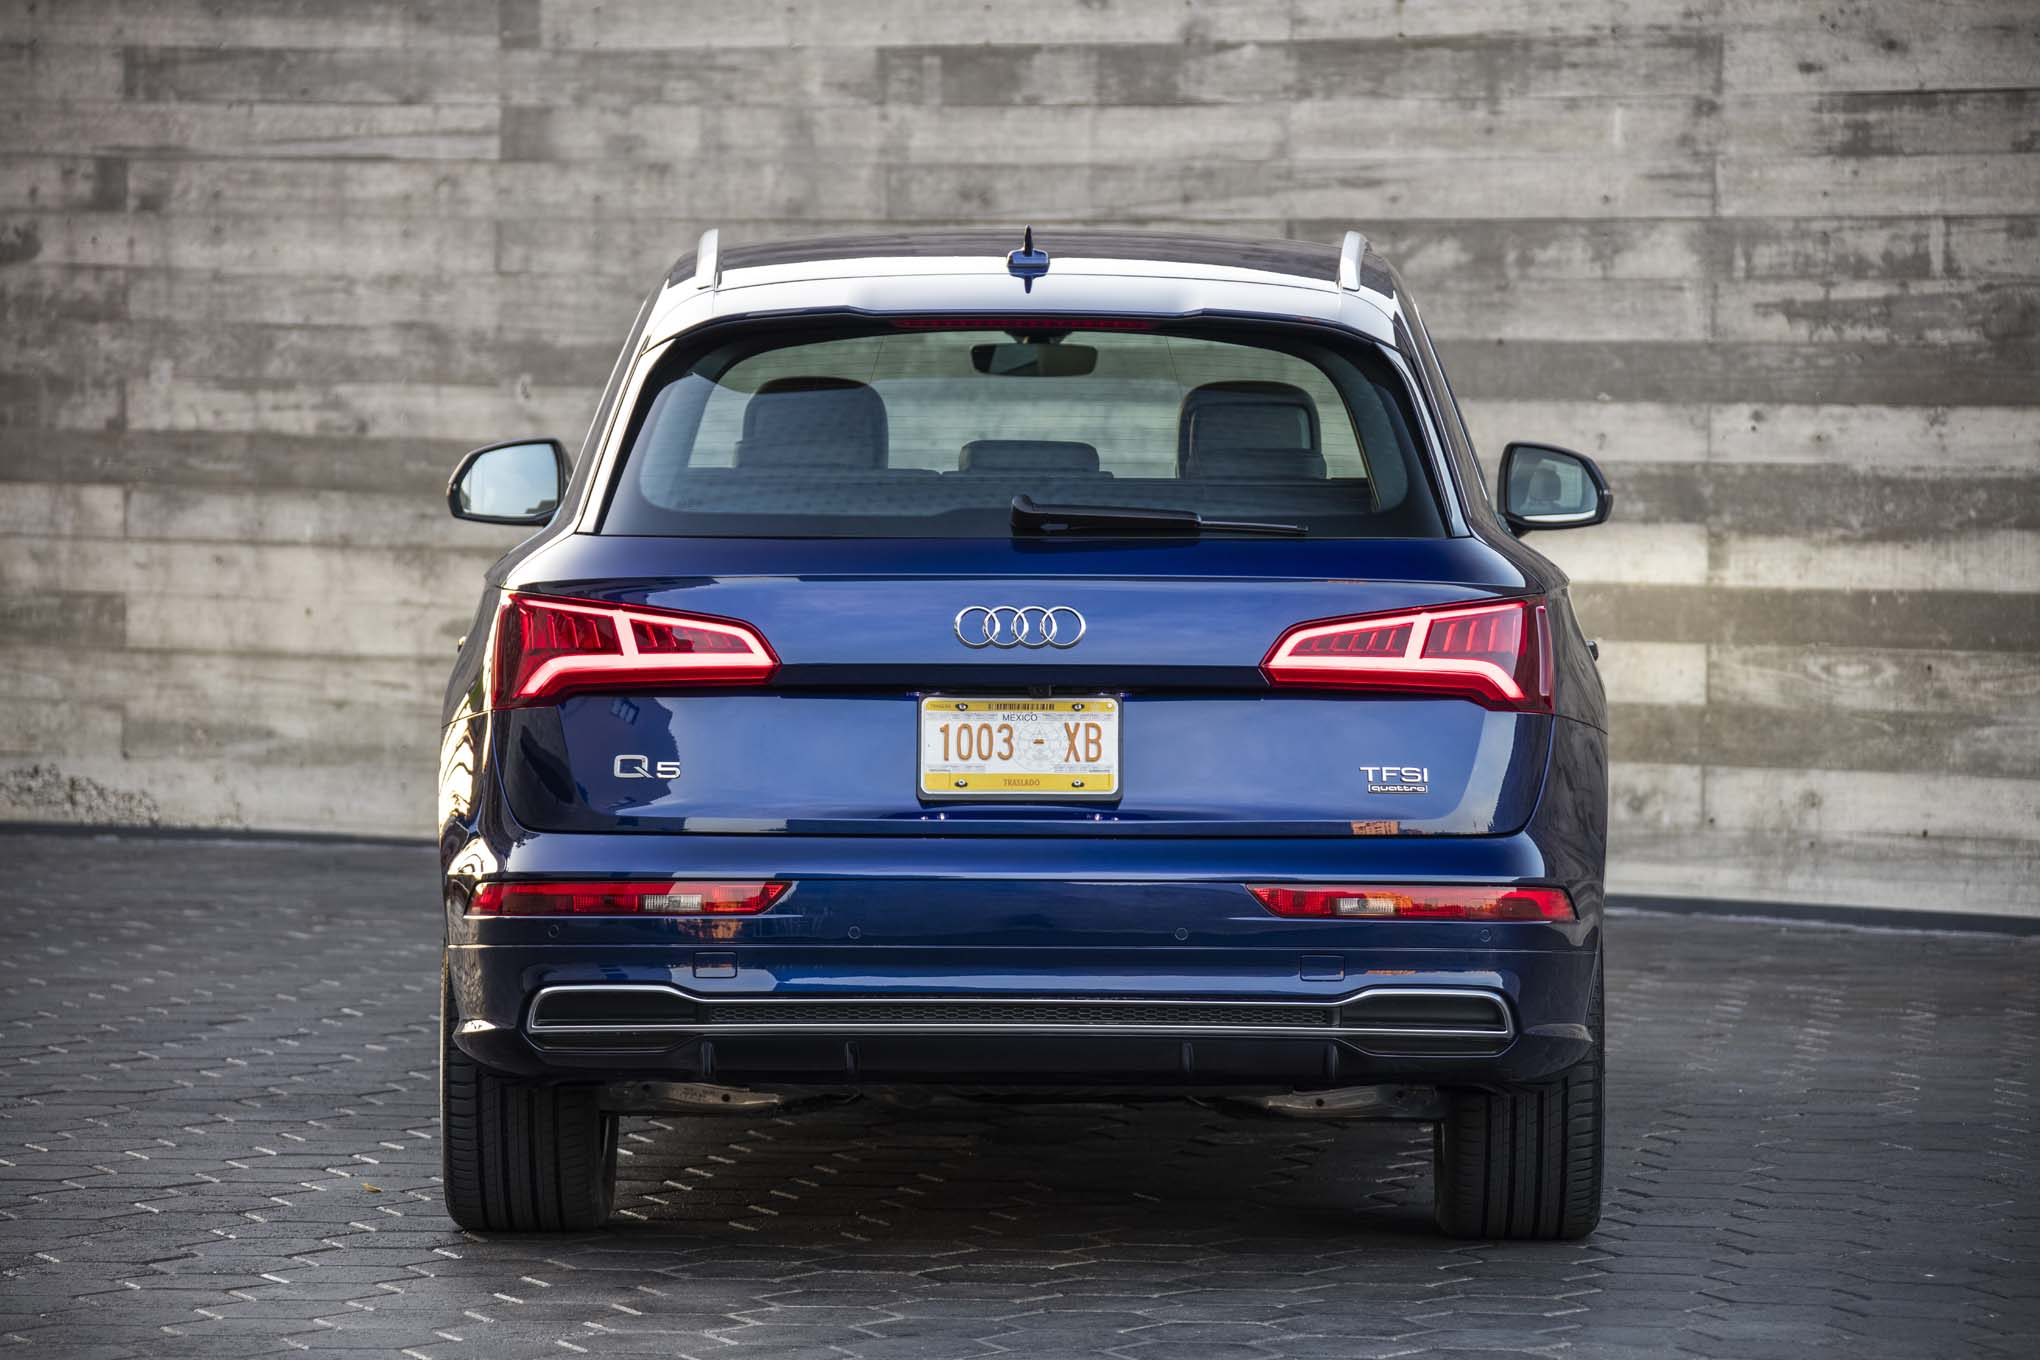 Audi Q First Drive Review Automobile Magazine - Audi q5 reviews